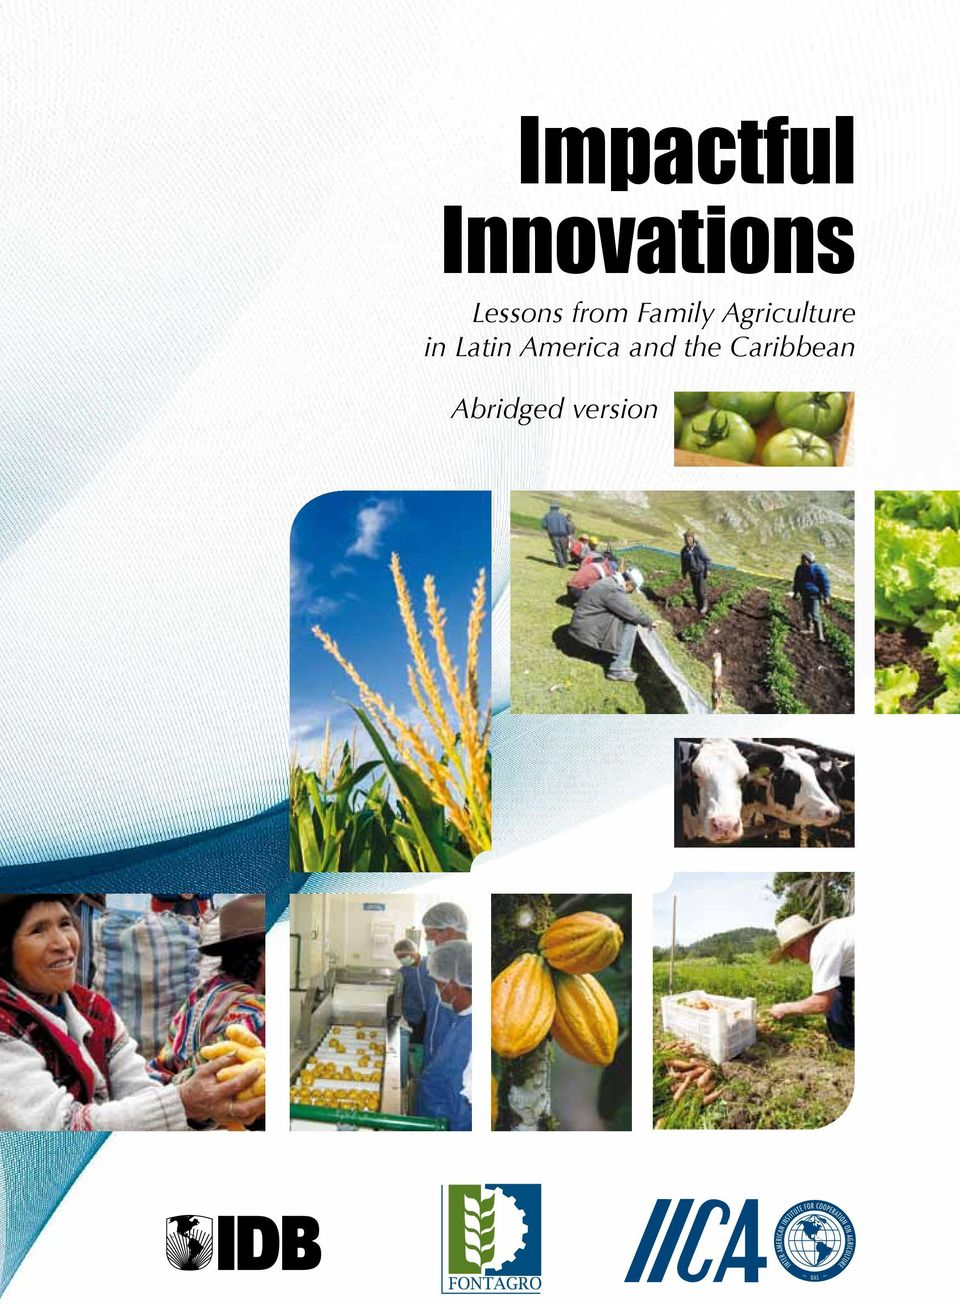 Agriculture in Latin